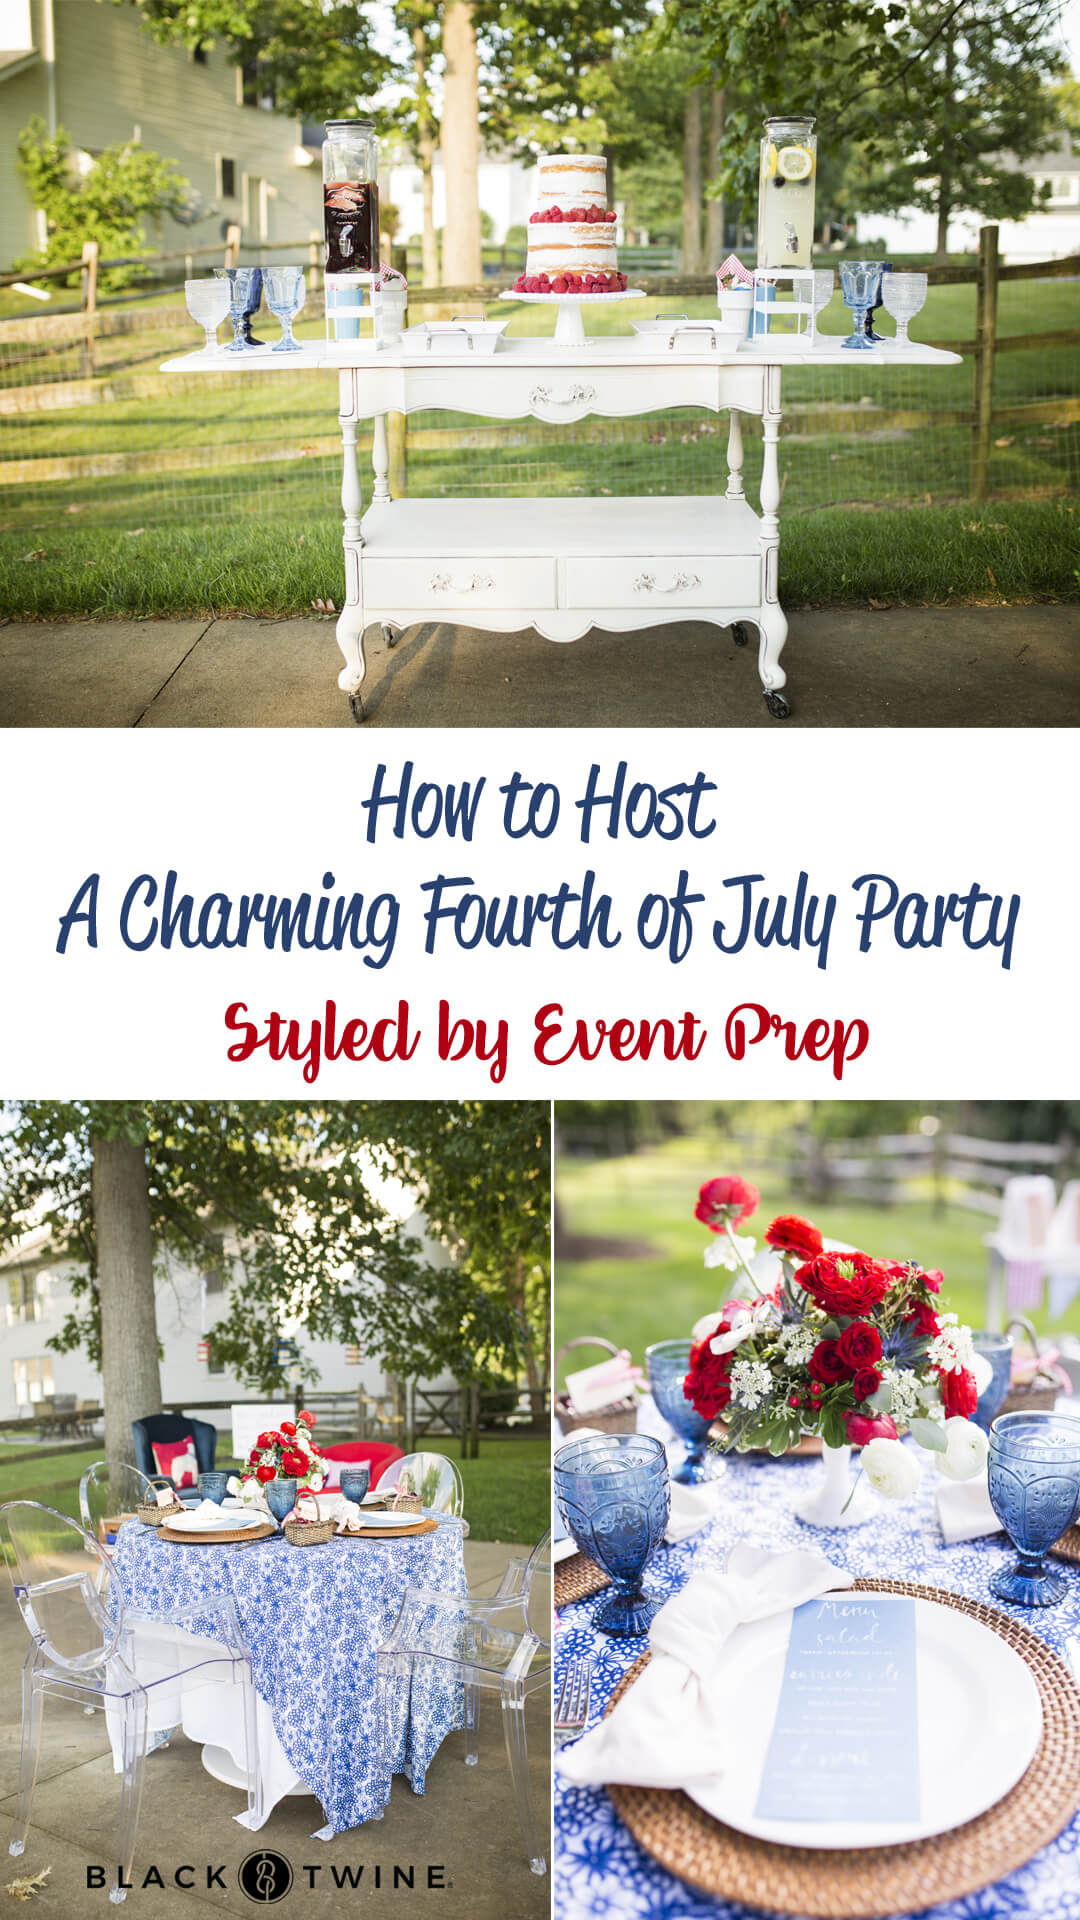 Collage Photos from A Charming Fourth of July Party styled by Event Prep | Black Twine